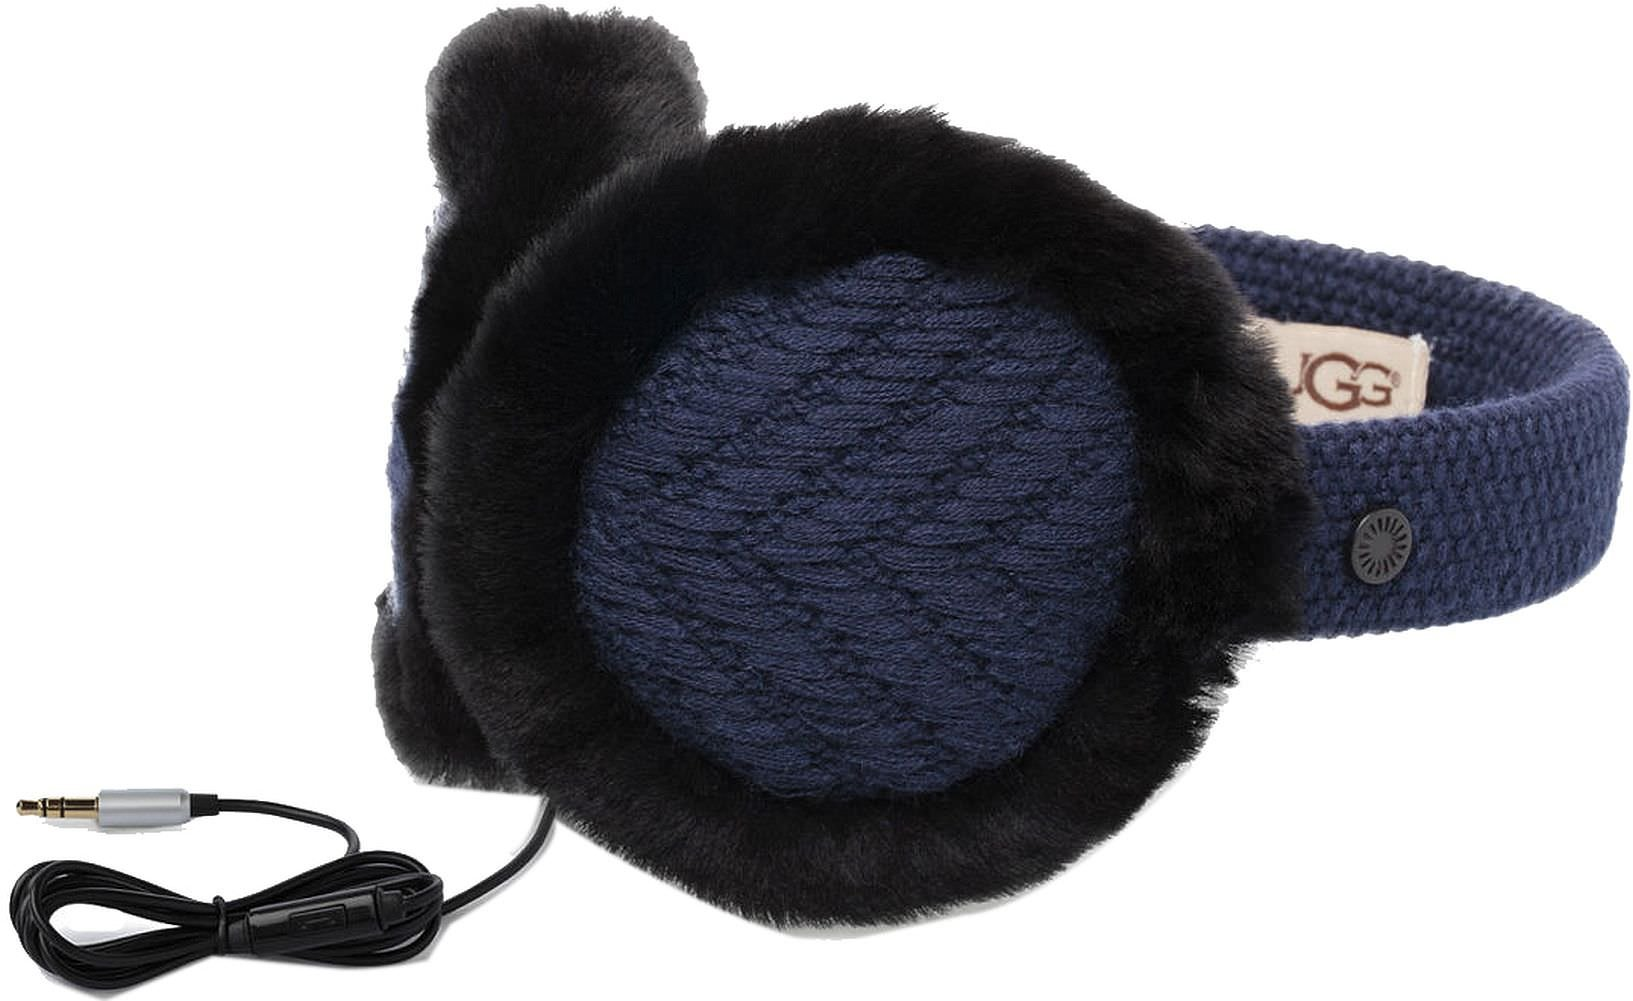 UGG Womens Textured Wired Knit Earmuff in Navy